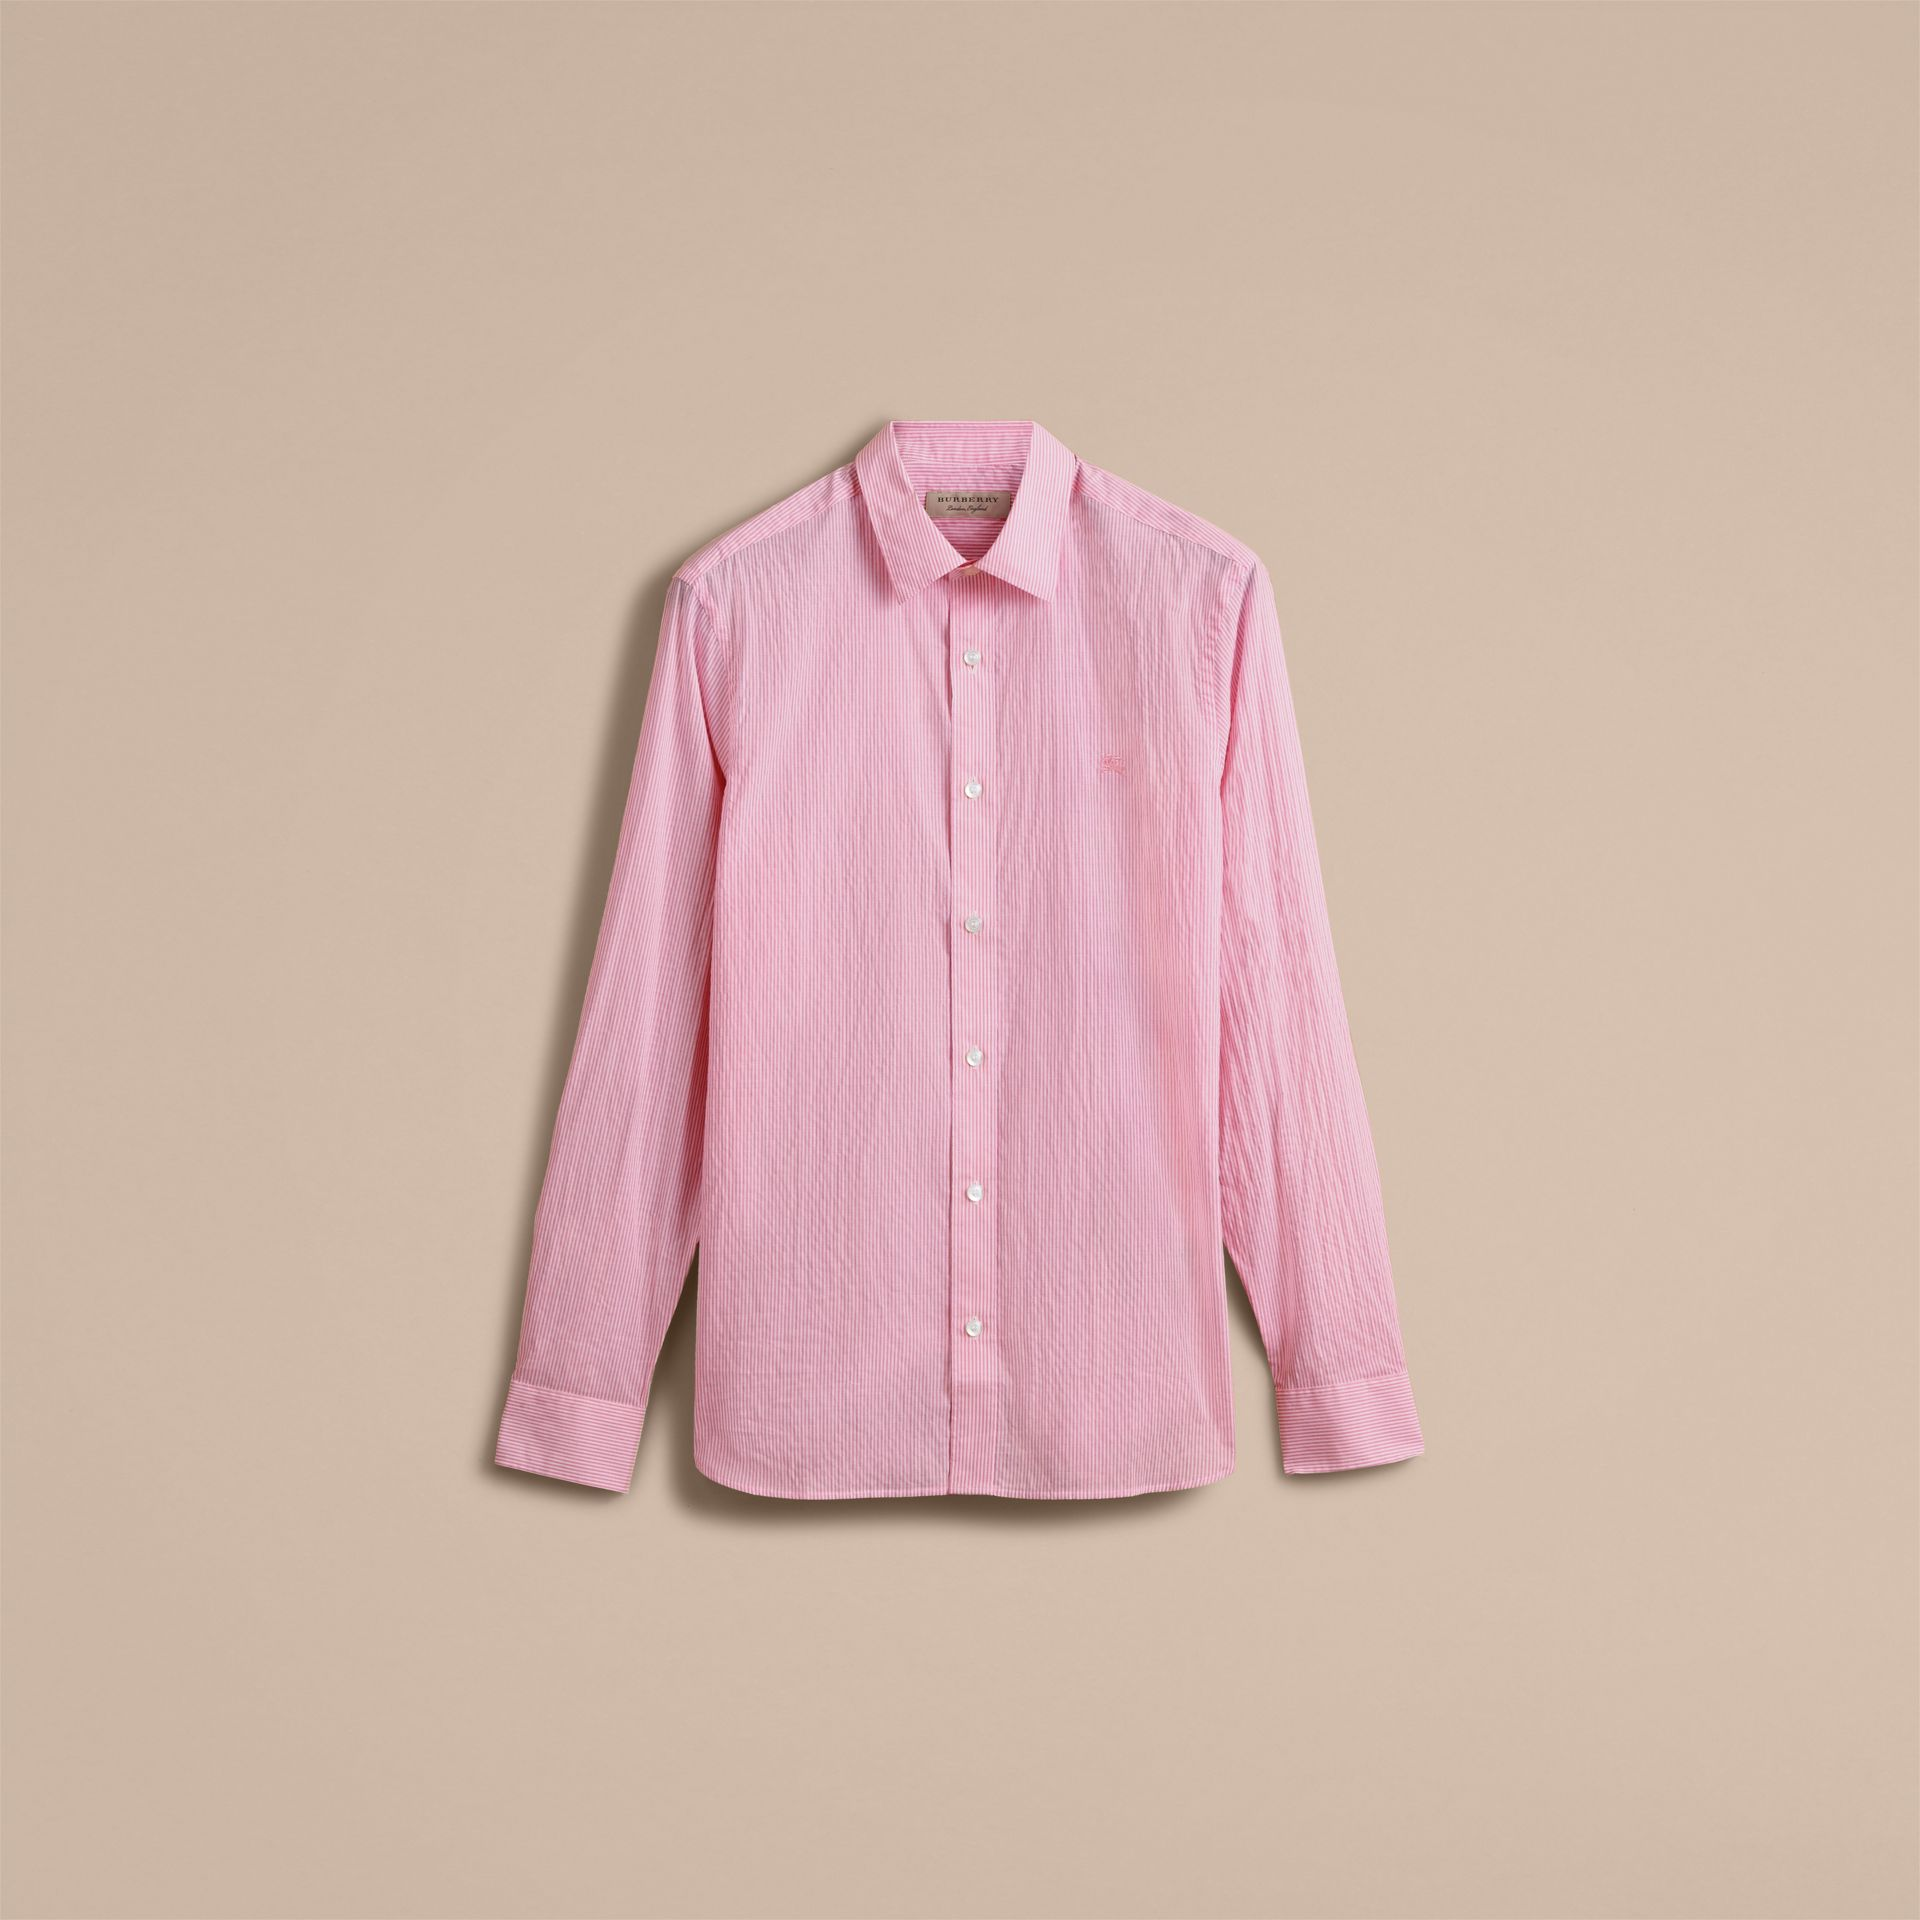 Striped Cotton Blend Shirt in Pale Pink - Men | Burberry - gallery image 4